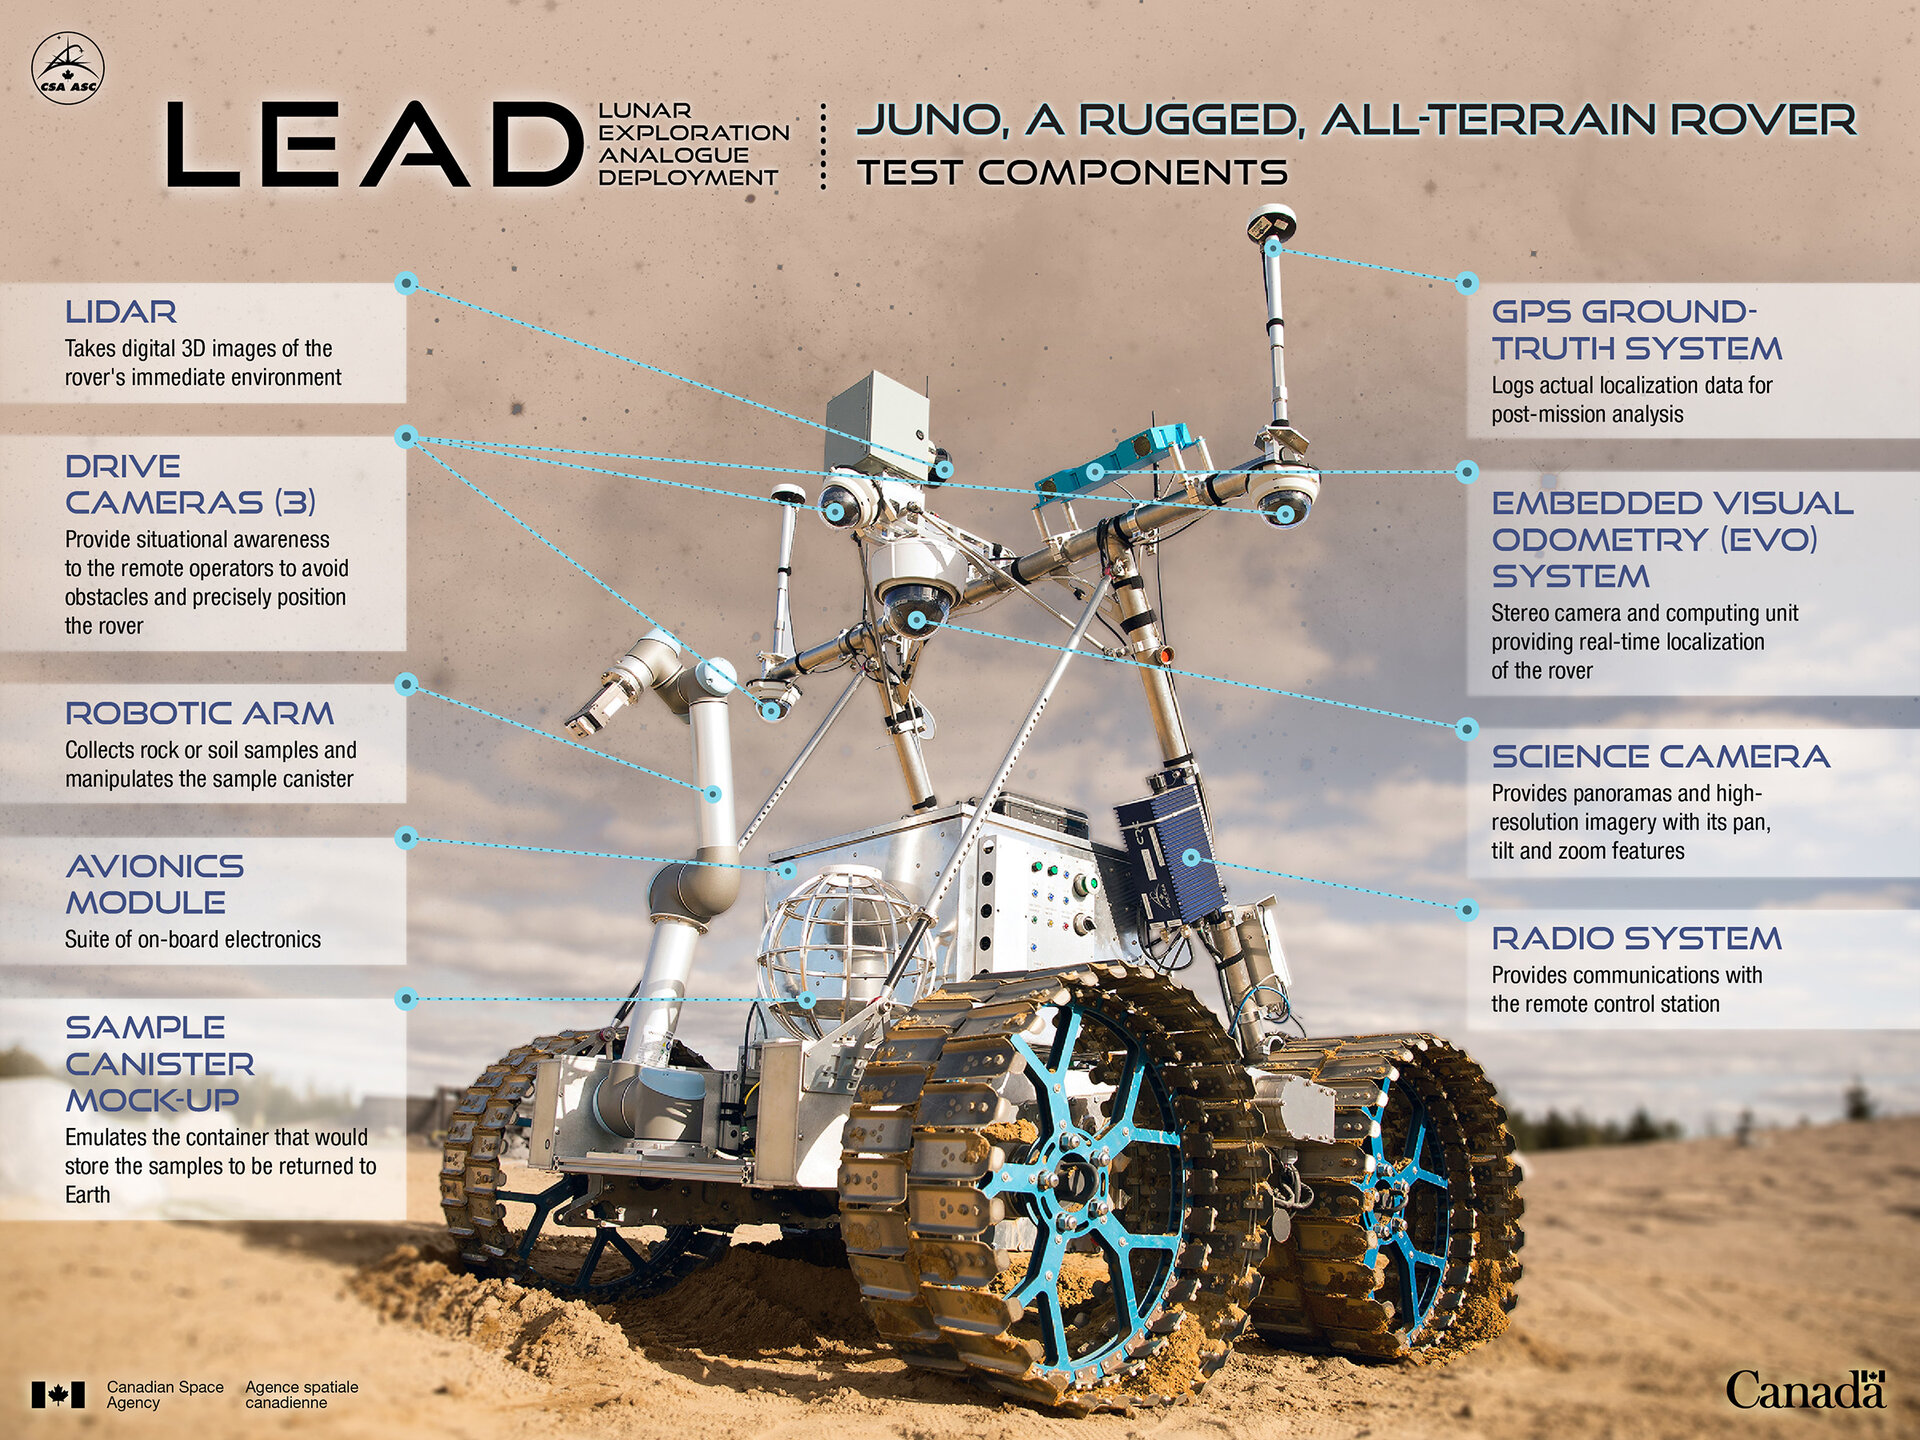 The Canadian Space Agency's Juno rover